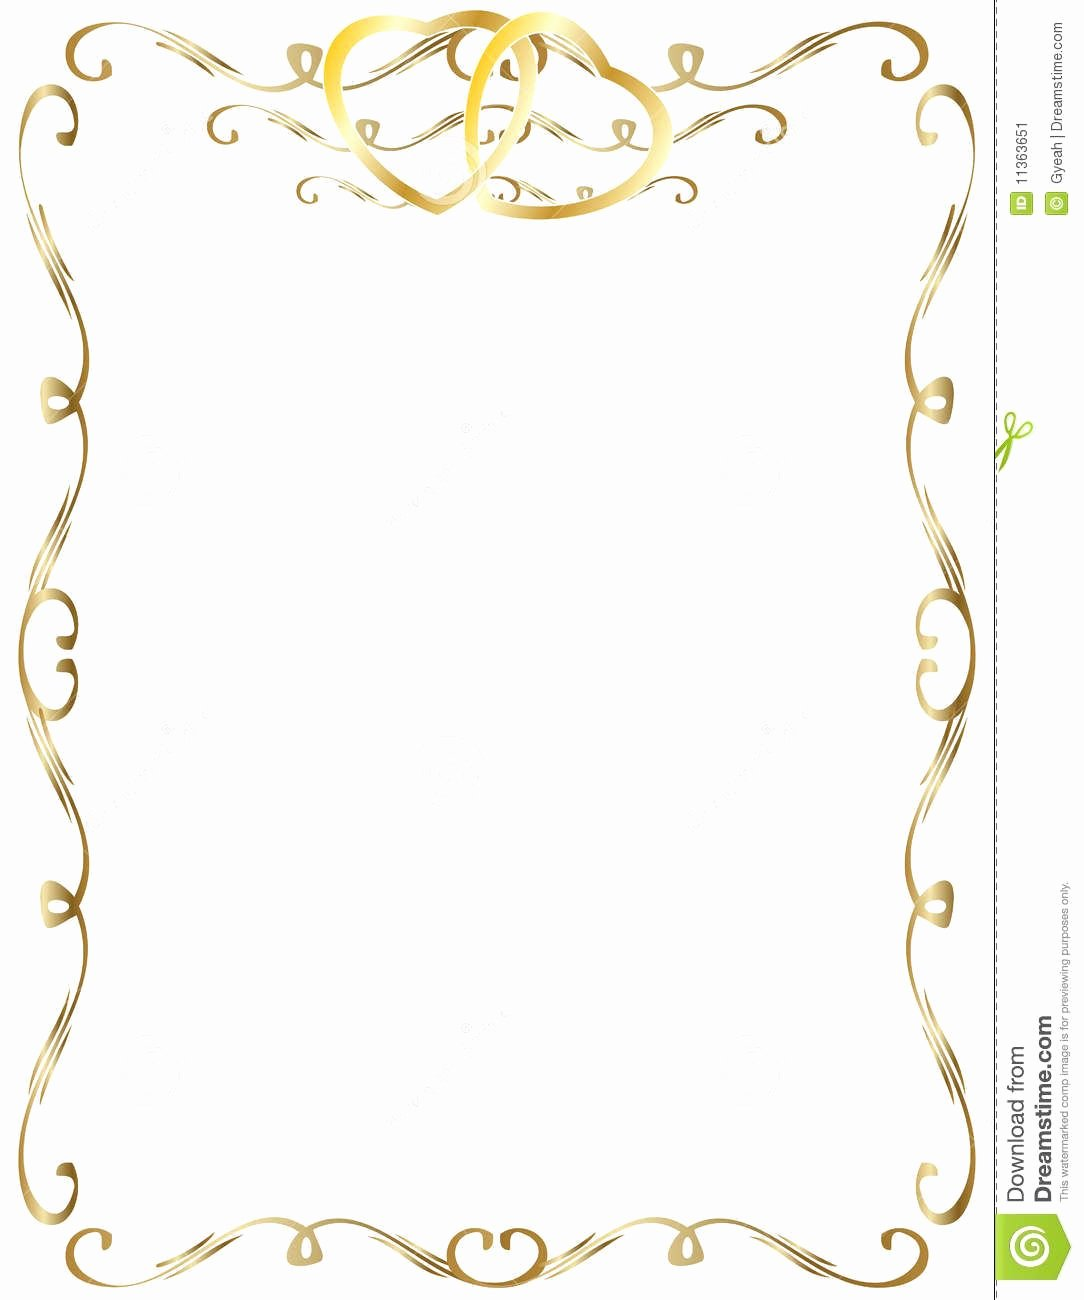 Free Gold Border Templates Awesome 50th Wedding Anniversary Clip Art Borders